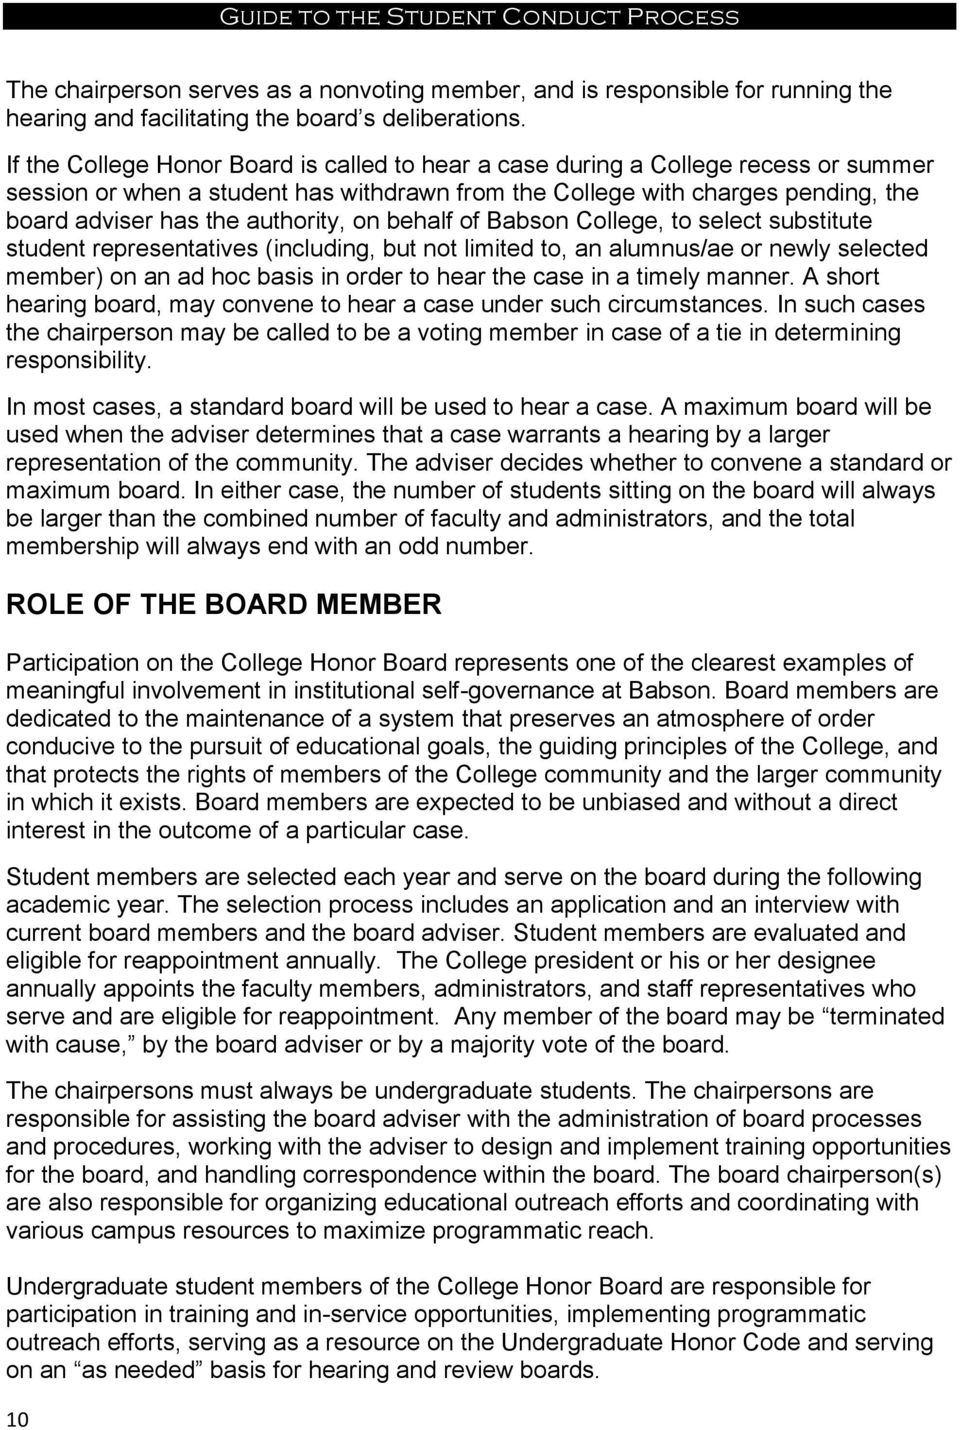 authority, on behalf of Babson College, to select substitute student representatives (including, but not limited to, an alumnus/ae or newly selected member) on an ad hoc basis in order to hear the